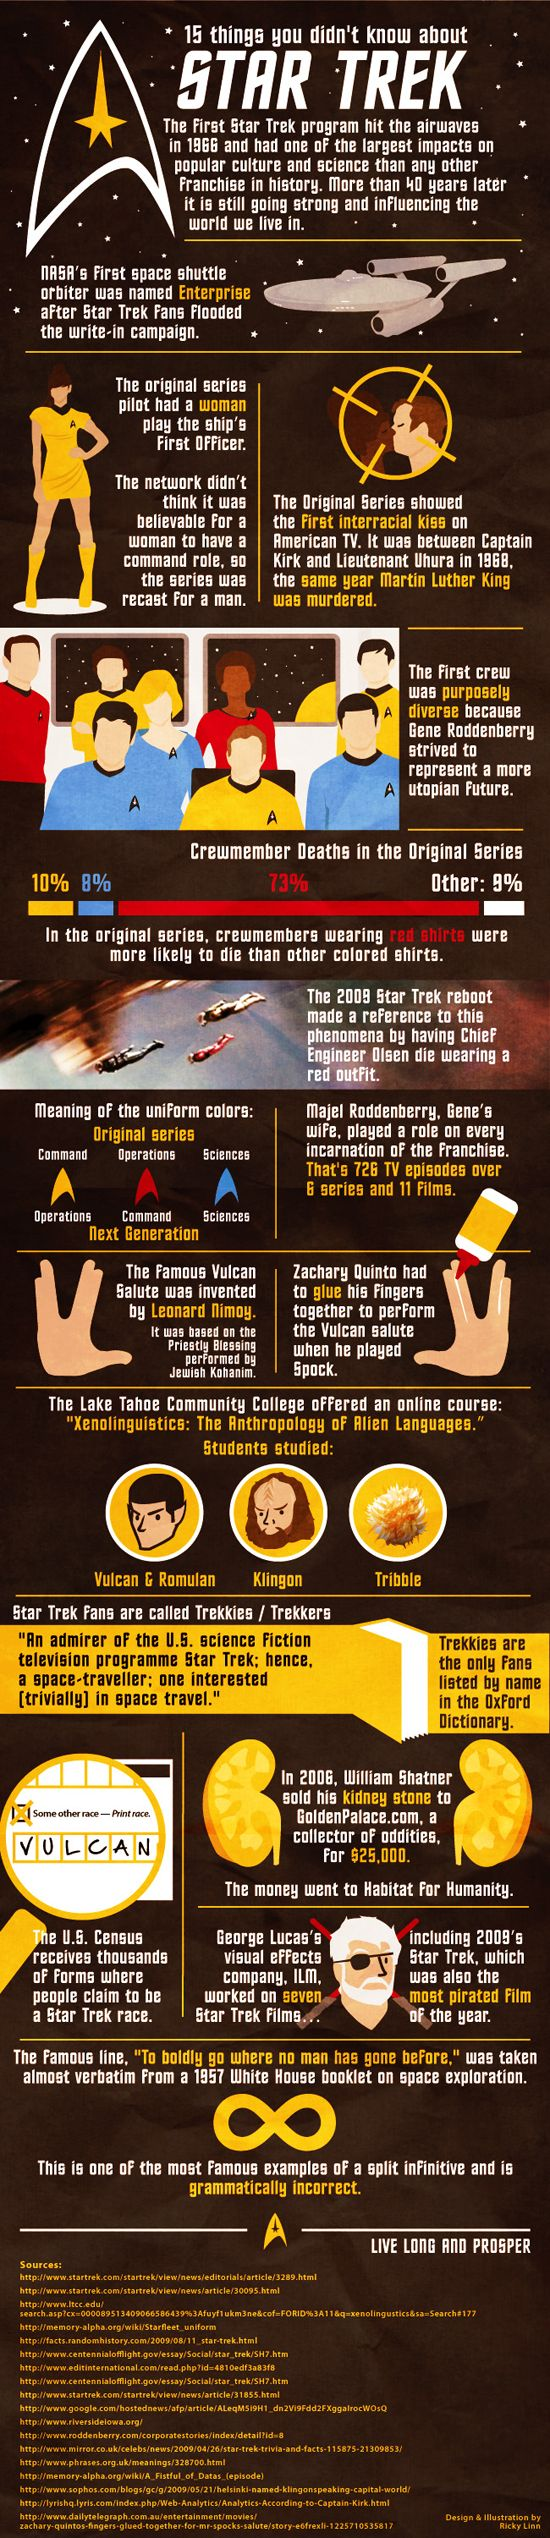 15 things you didn't know about Star Trek  #StarTrek